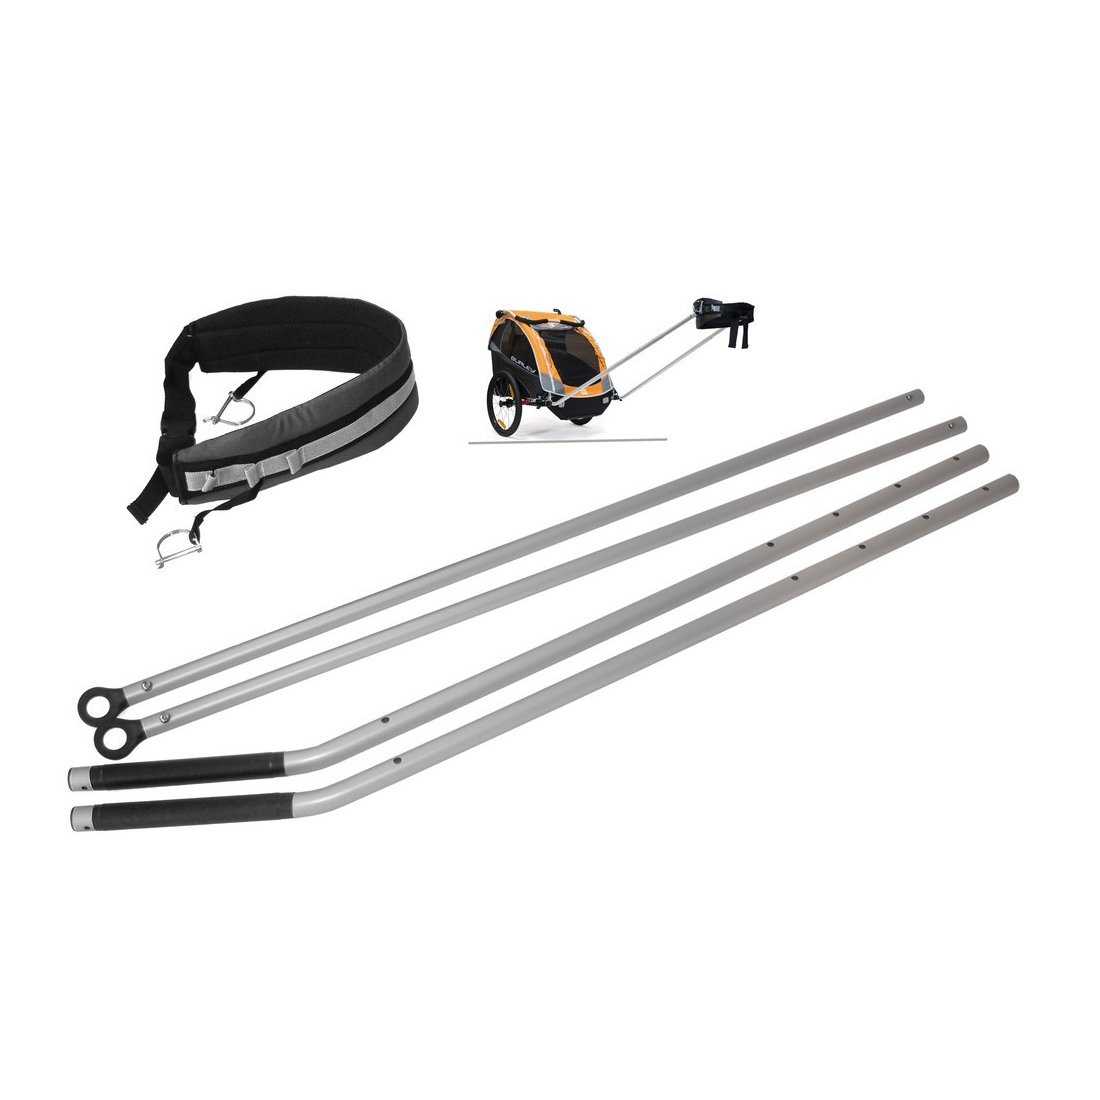 Burley 960199 Walking and Hiking Kit passend für Solo,D´Light,Encore und Cub (1 Set)